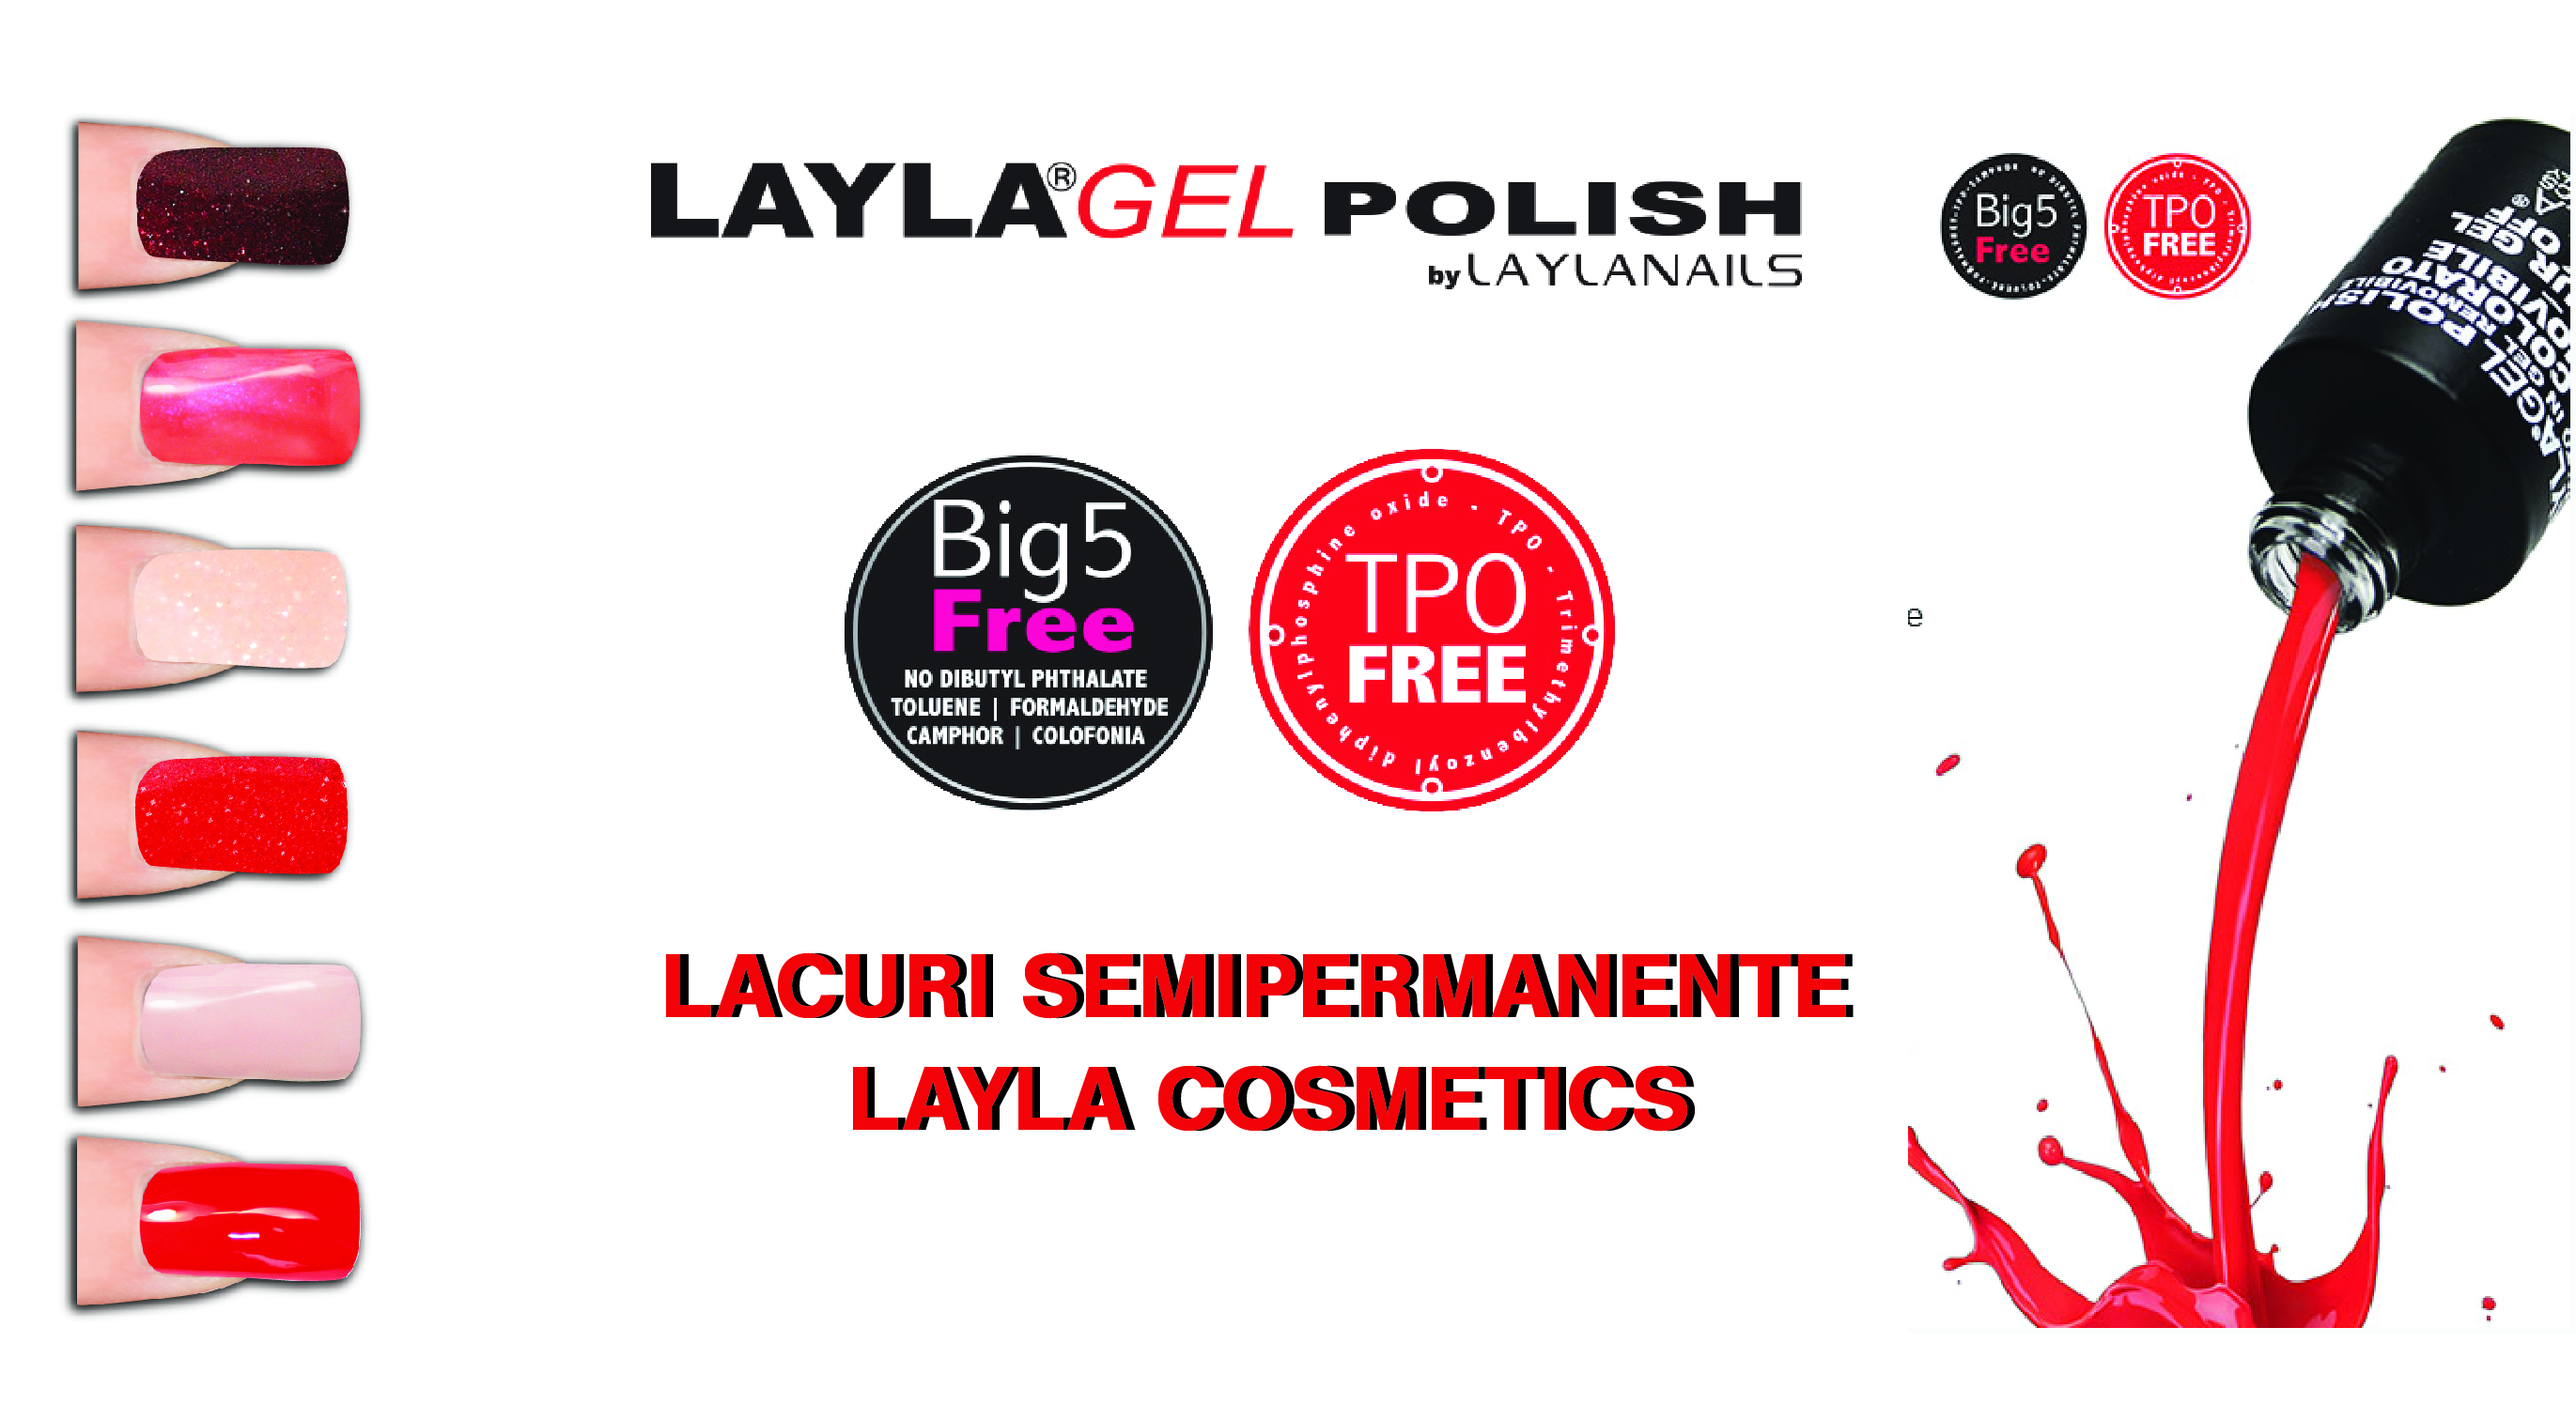 layla gel polish ads